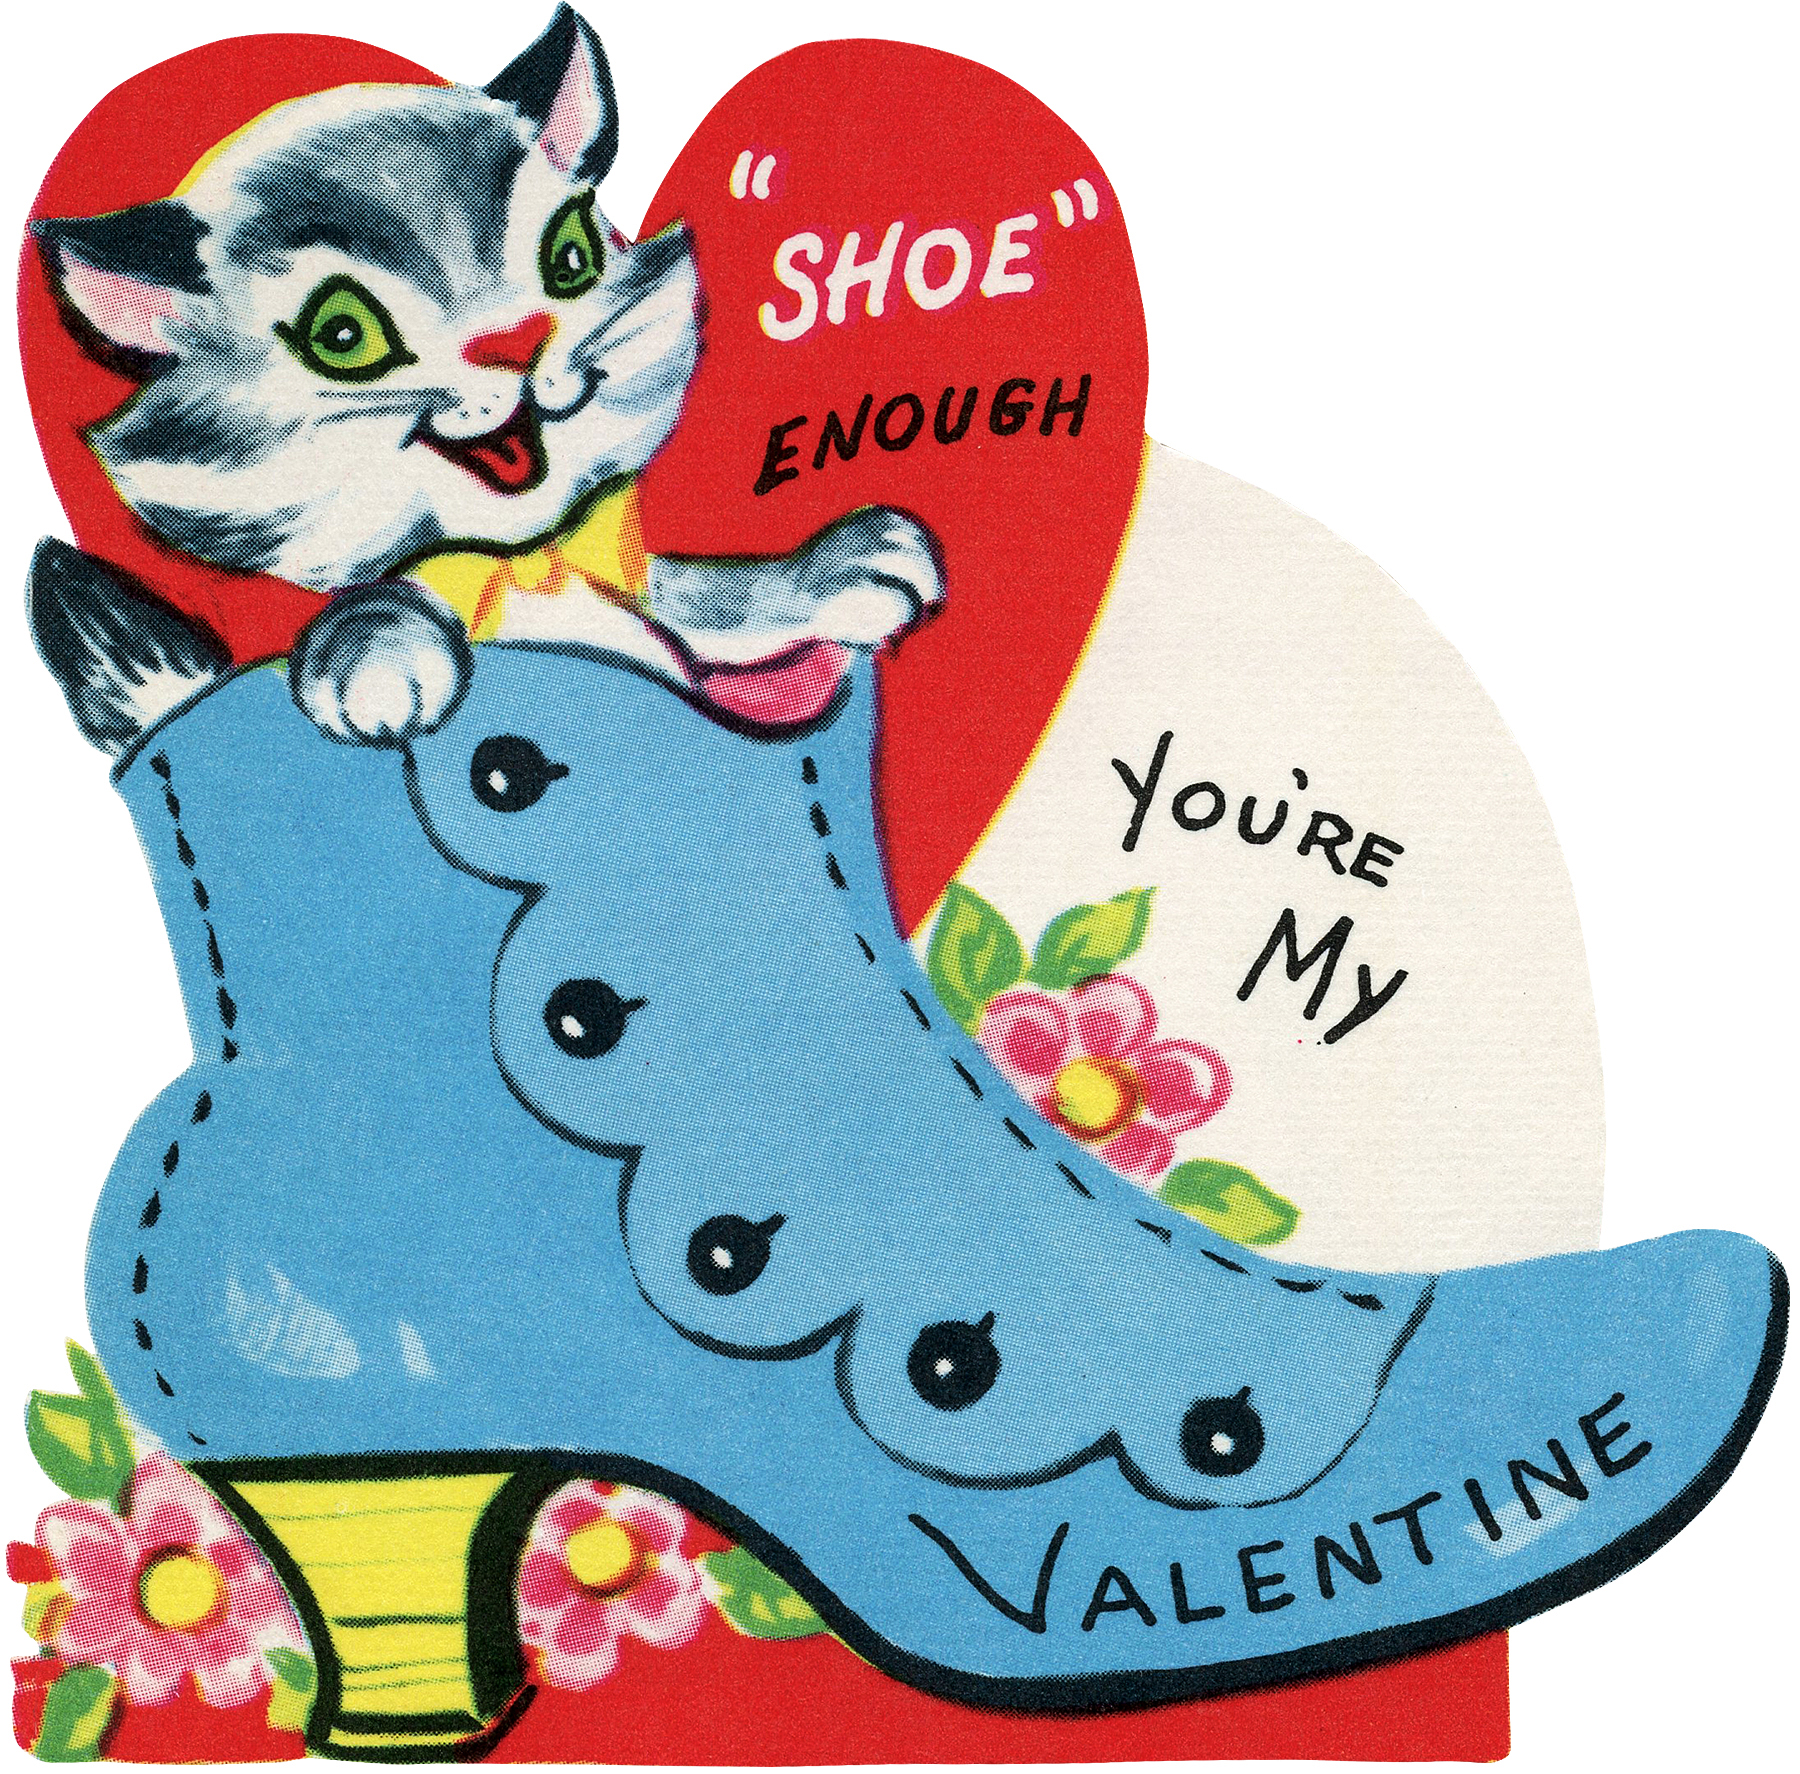 Retro Valentine Cat in Shoe Image